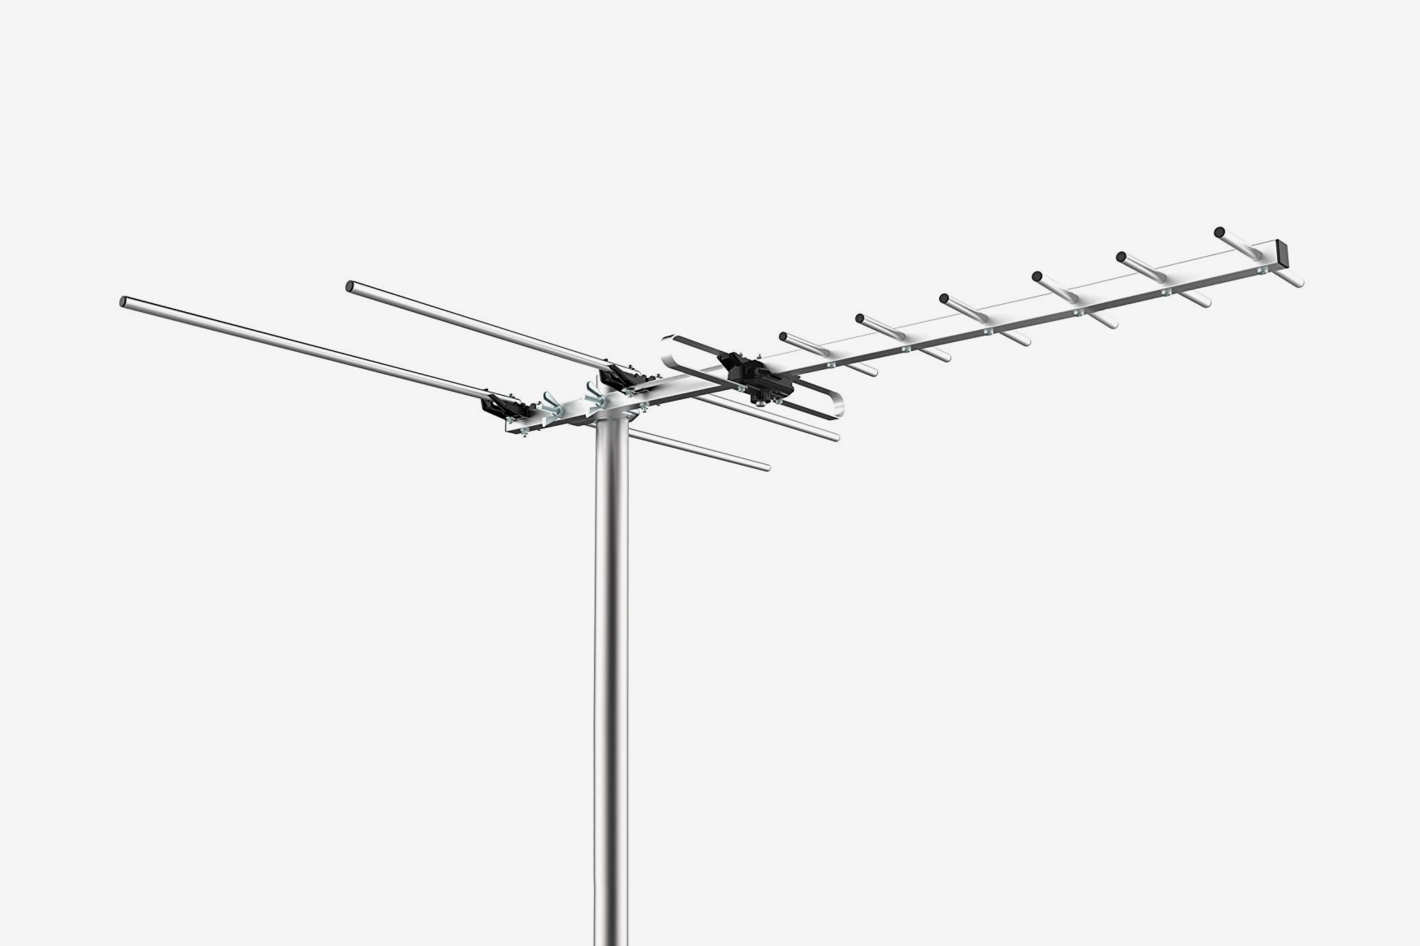 Top 10 Best GE PRO Outdoor Antenna 70 Miles Comparison